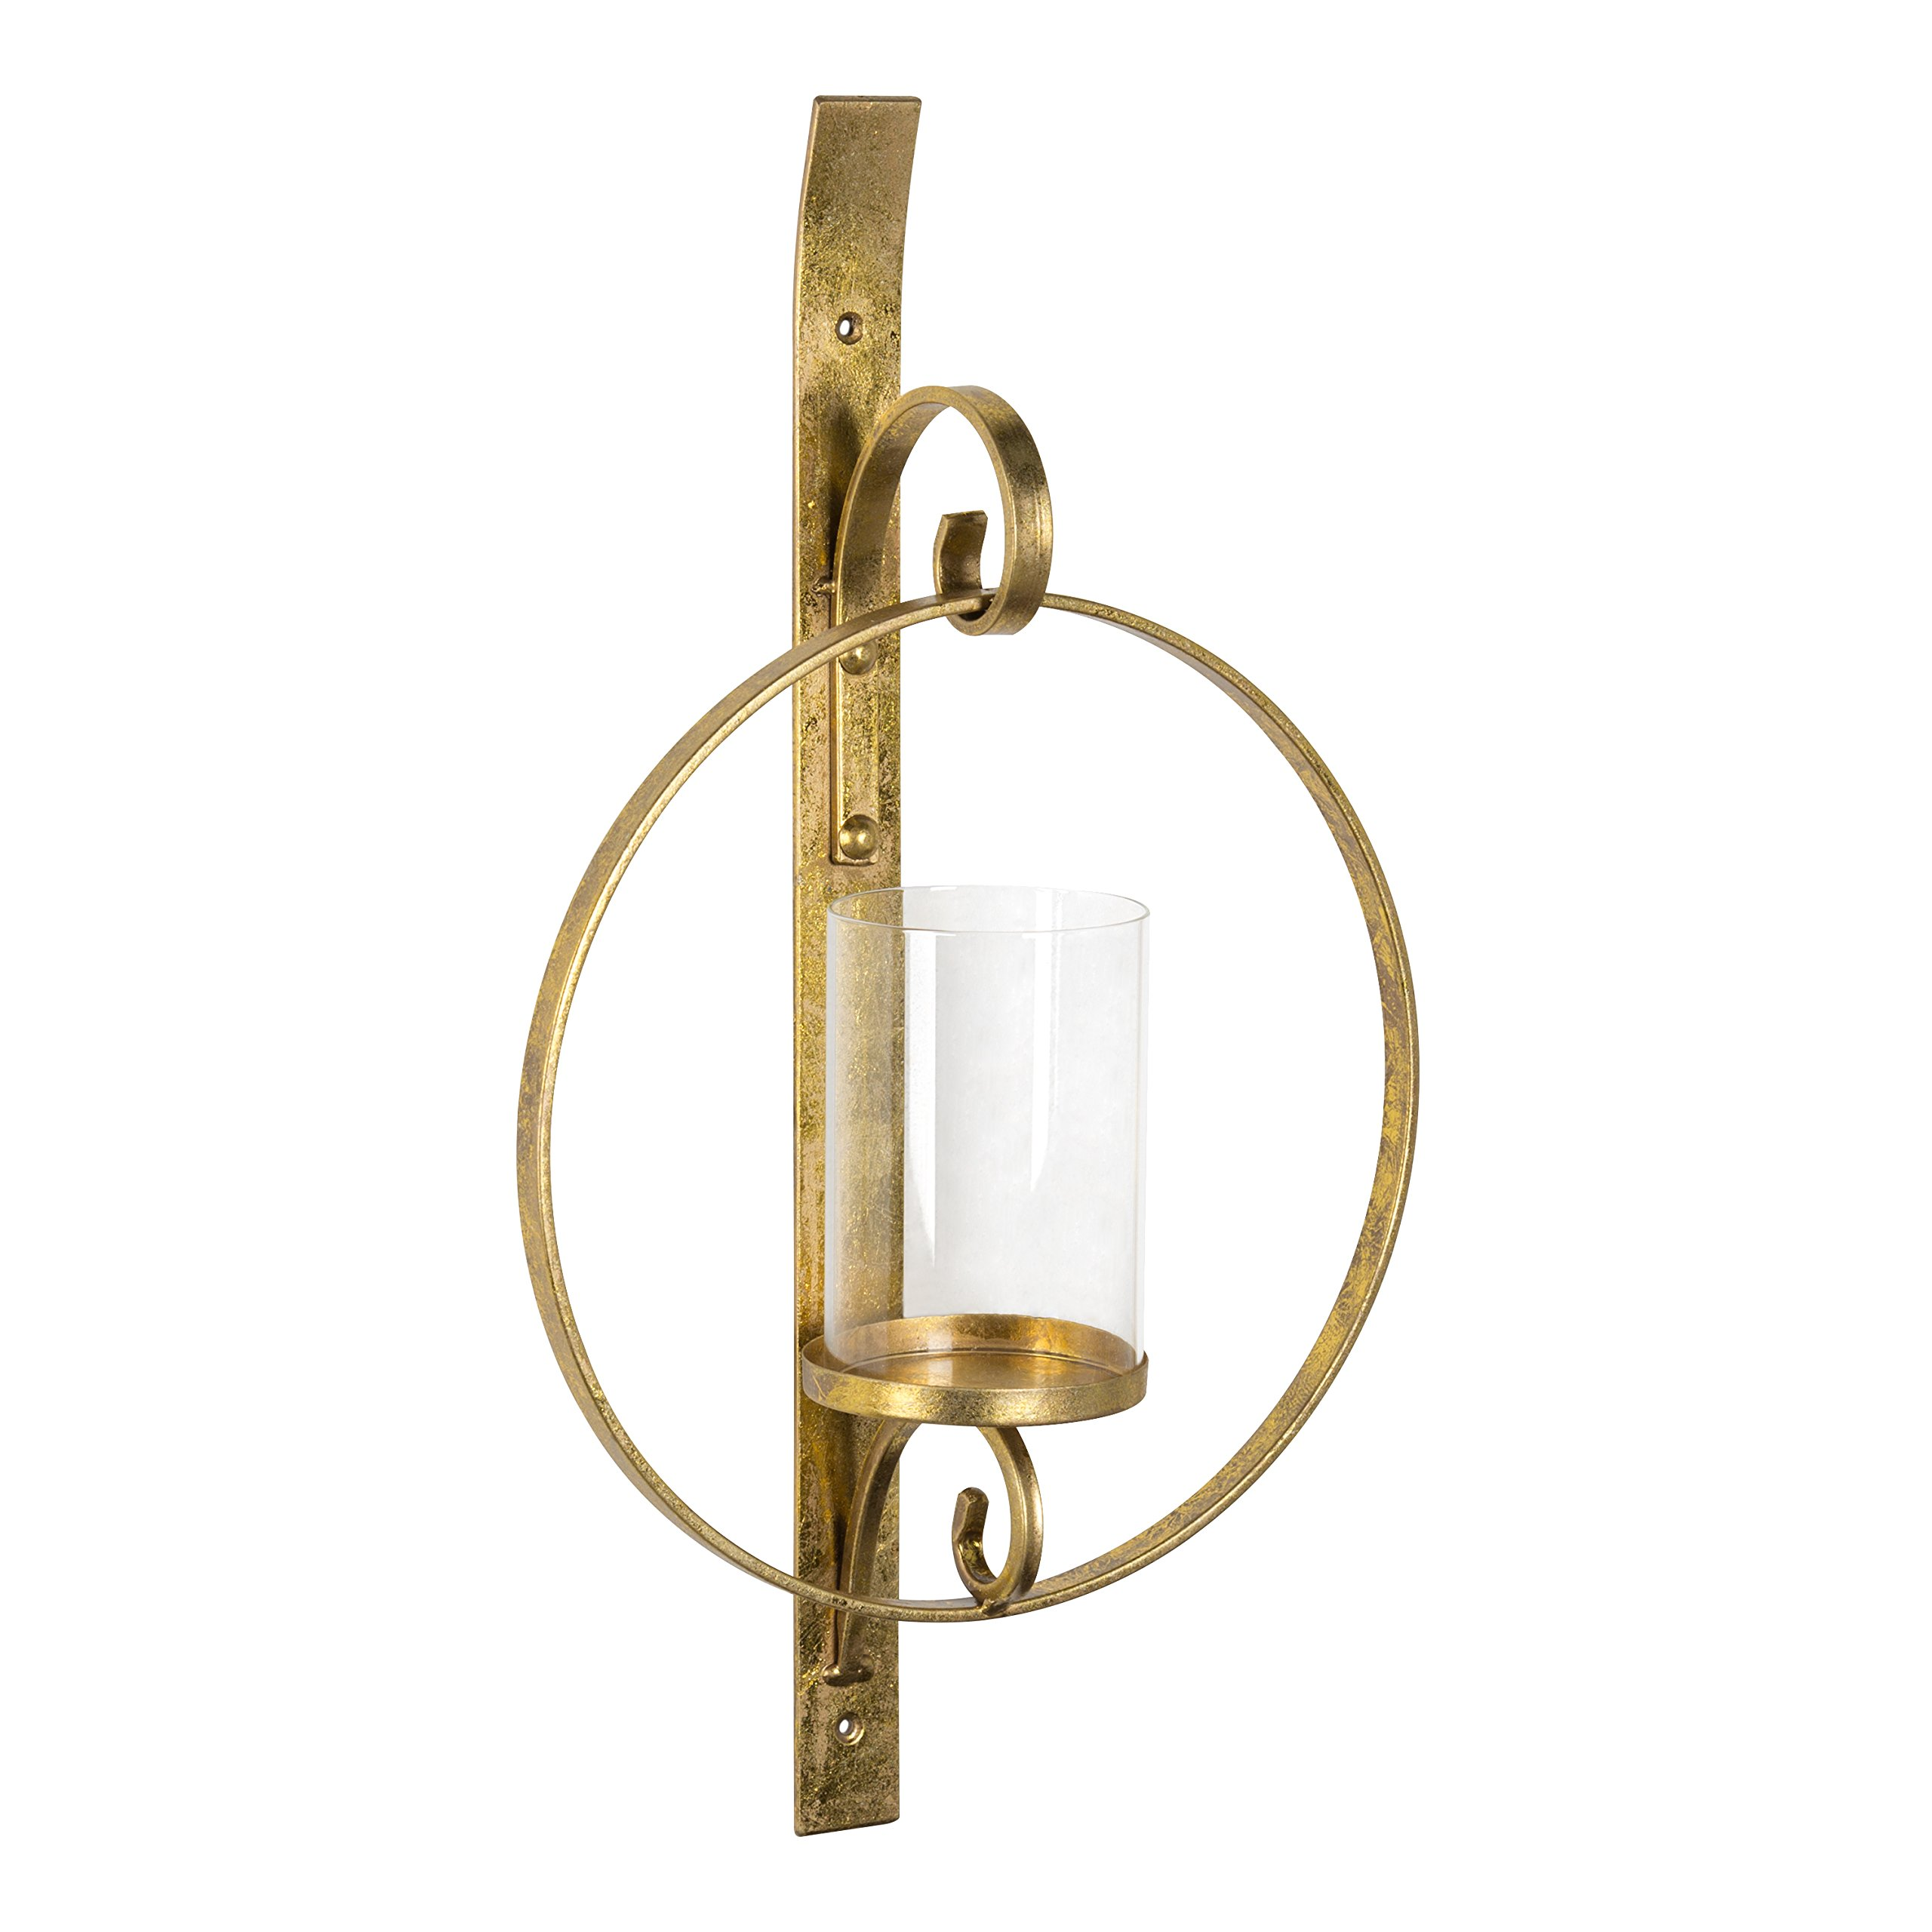 Kate and Laurel Doria Metal Wall Candle Holder Sconce, Gold Leaf Finish, Includes 6 inch Glass Pillar